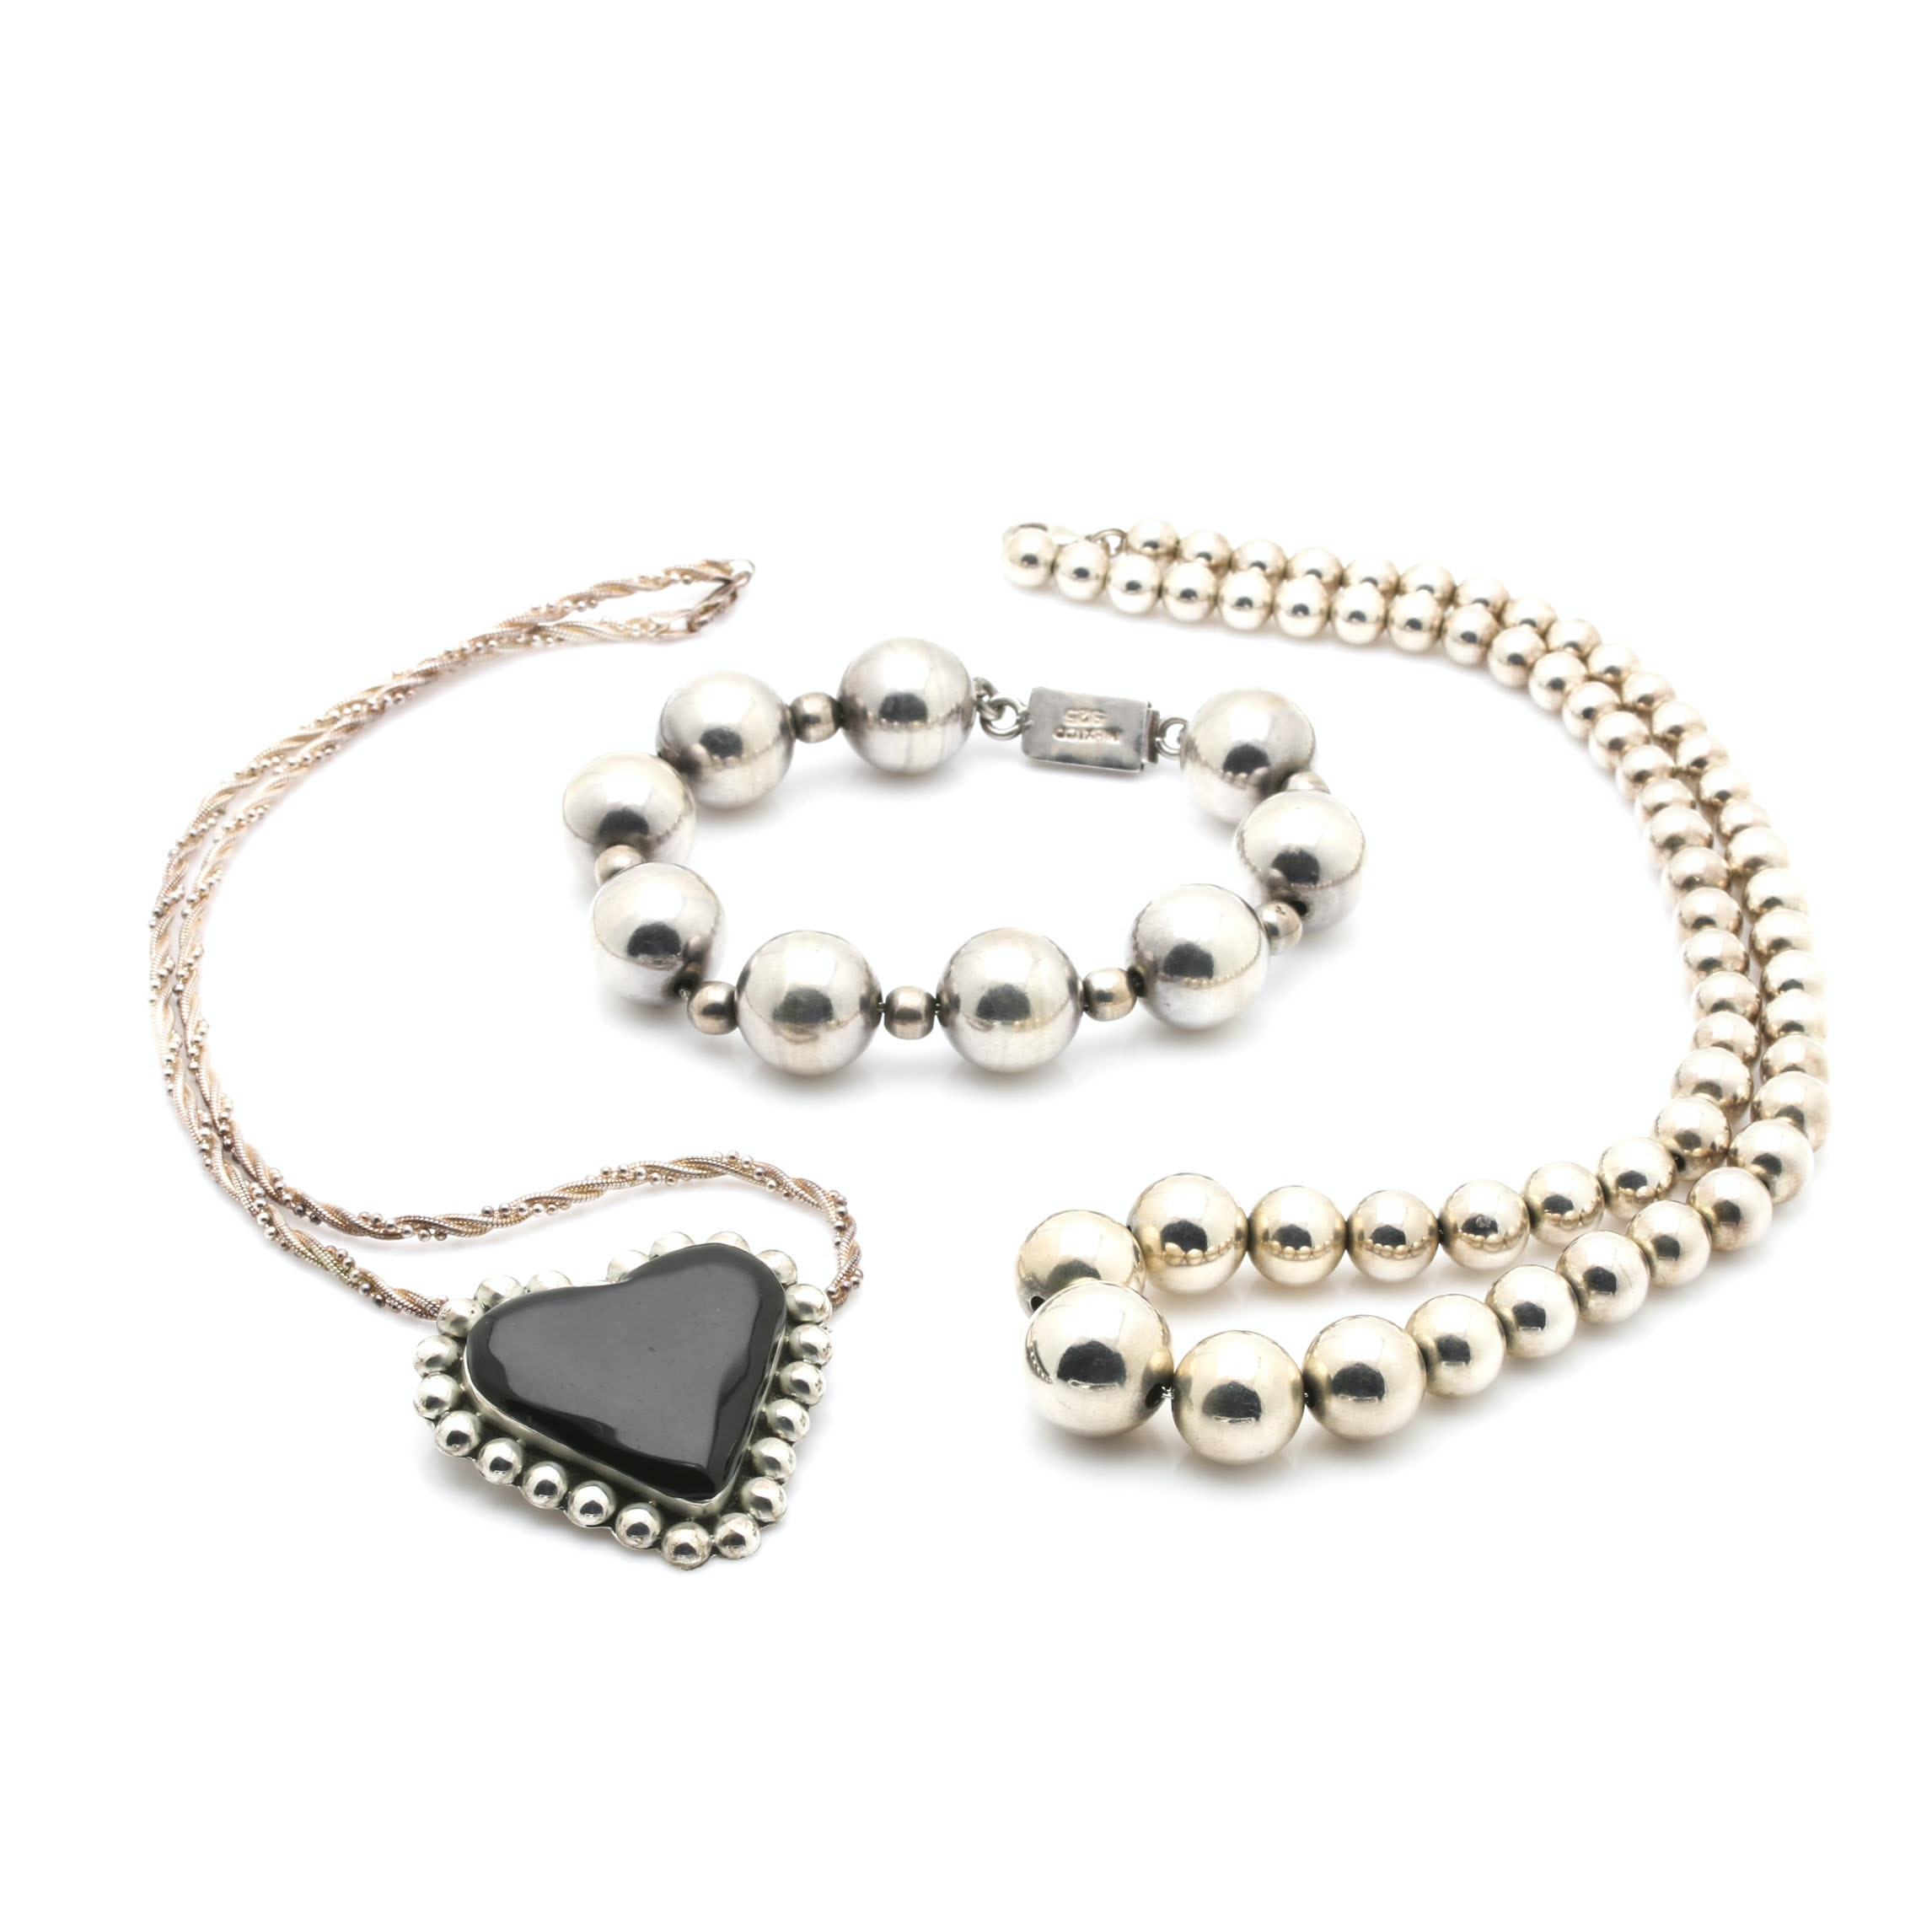 Sterling Silver Bracelet and Necklaces